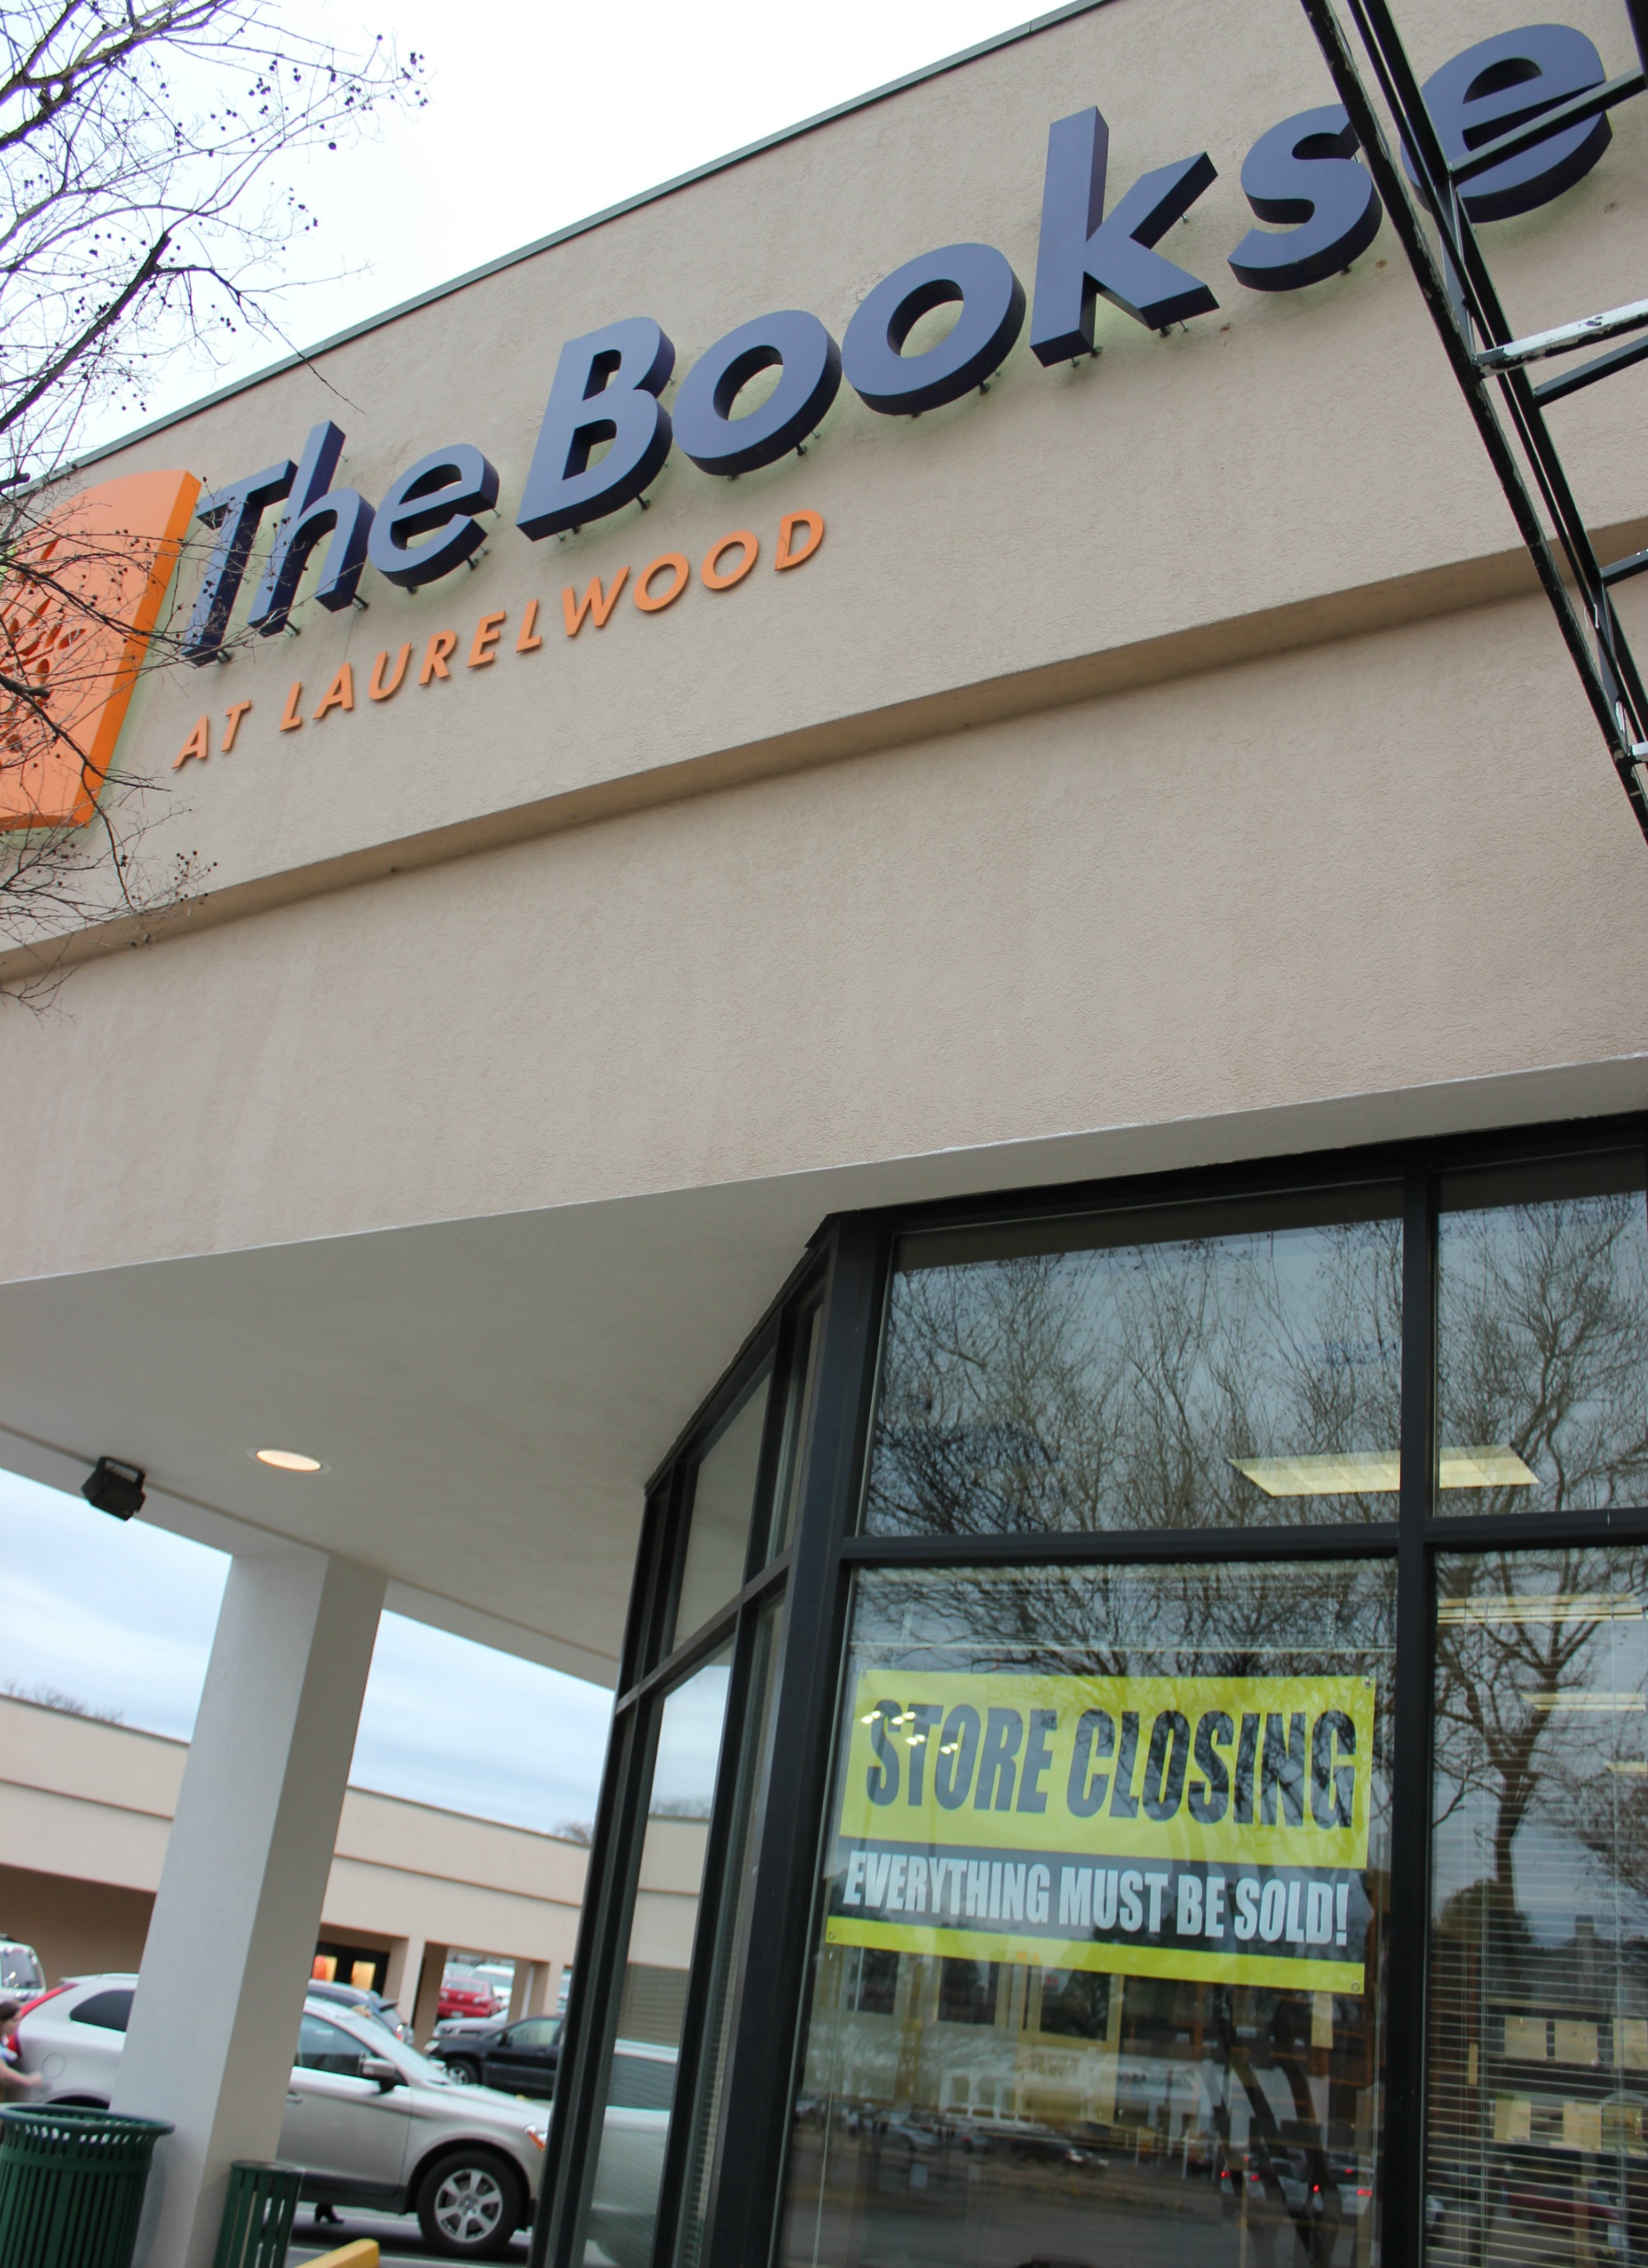 Booksellers' storefront closing banner.